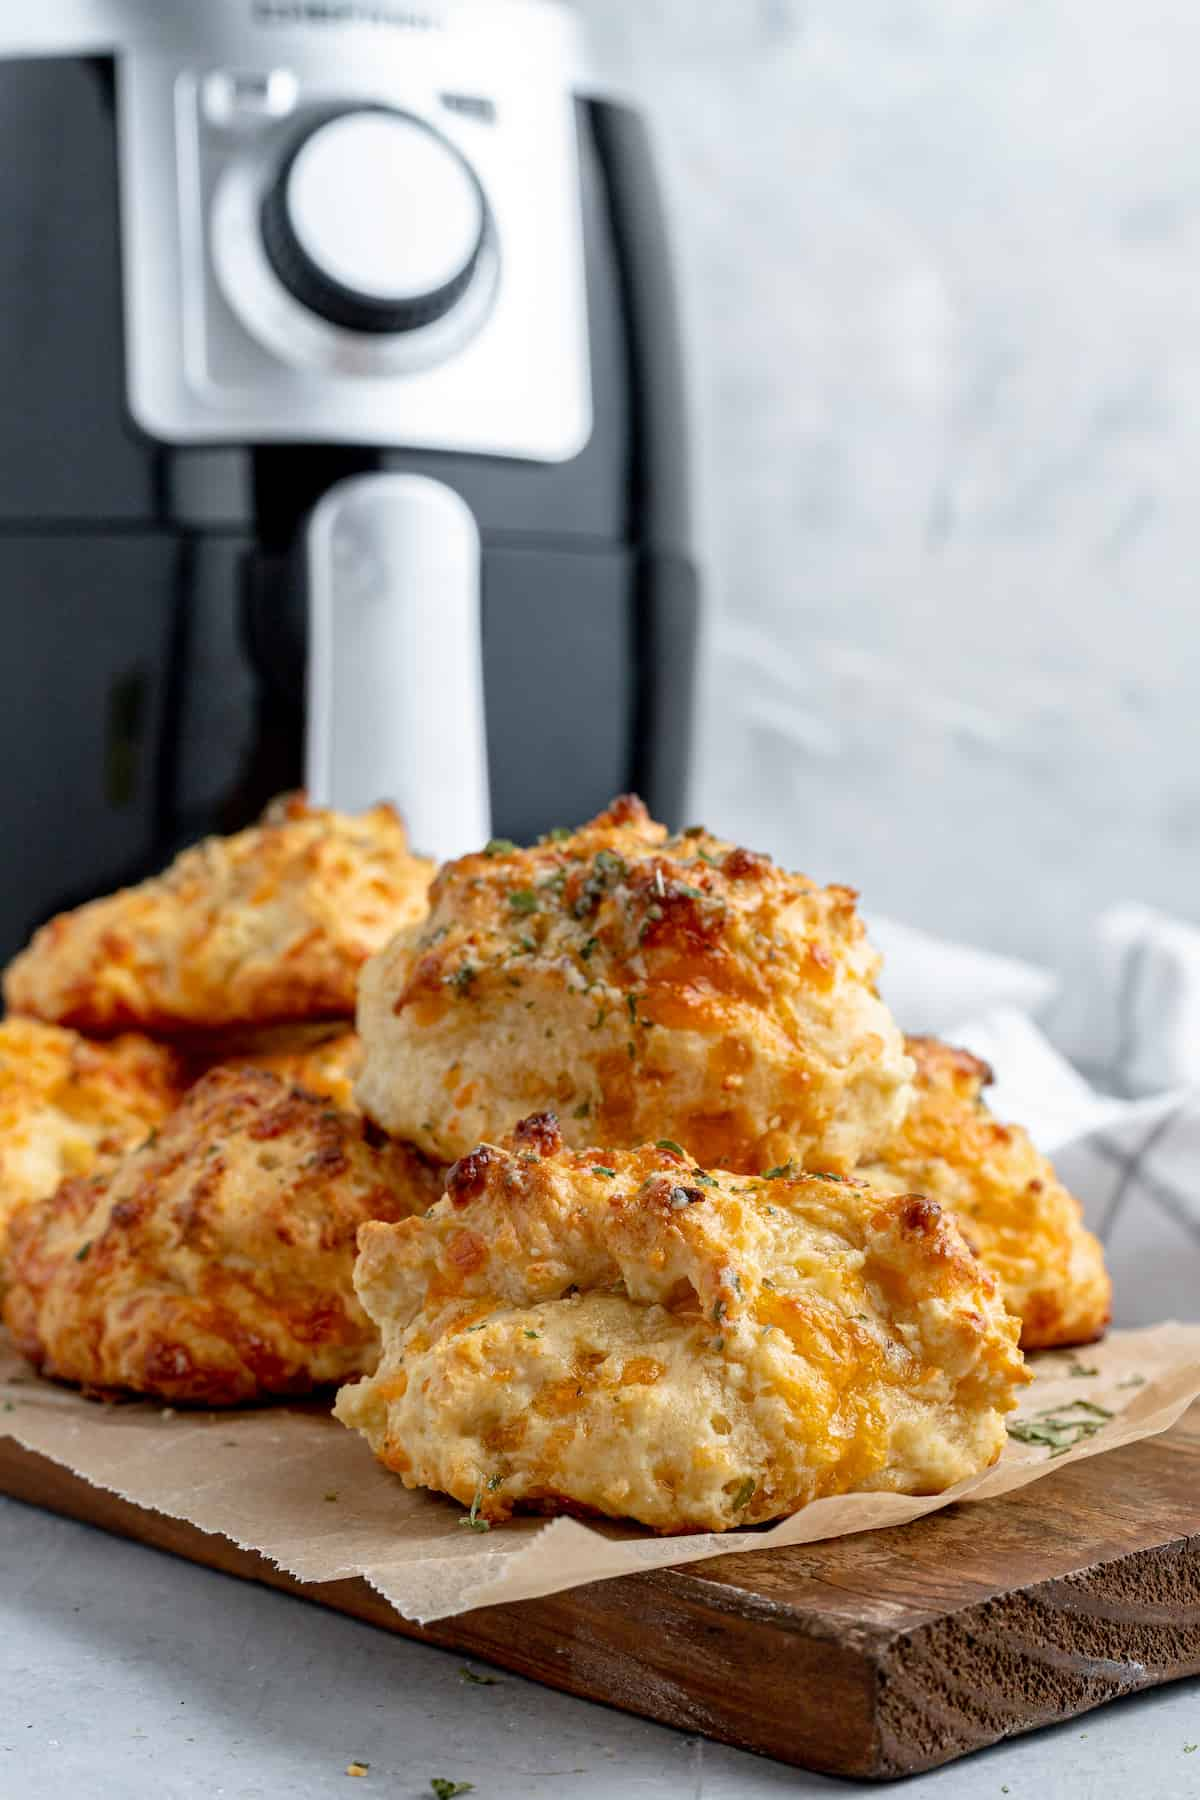 A Pile of Red Lobster Biscuits on a Cutting Board with an Air Fryer in the Background